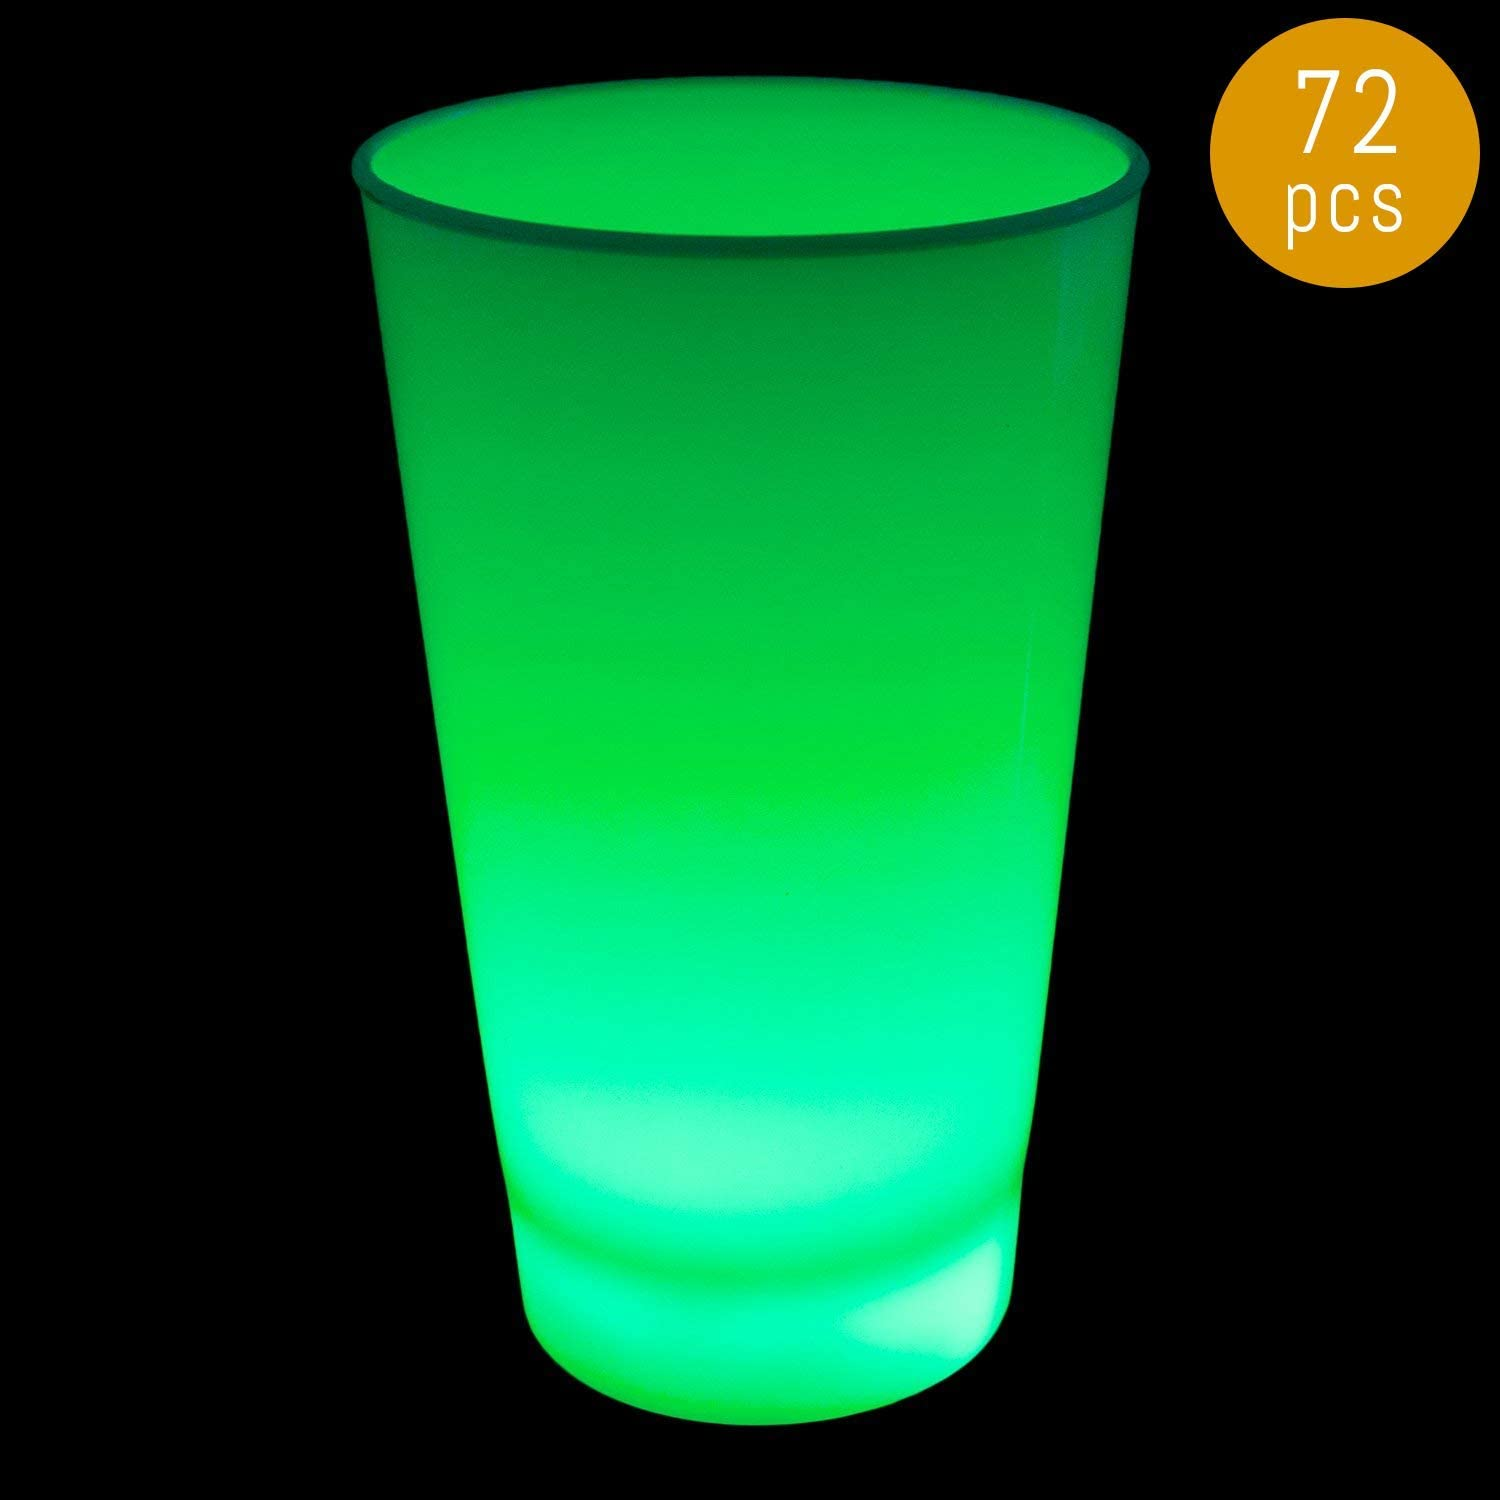 Lumistick Glow in The Dark LED Light Up Cup 16oz - Multi Color Illuminates Party Cup - Luminous Blinking Fancy Cups Supllies (Green, 72 Cups)